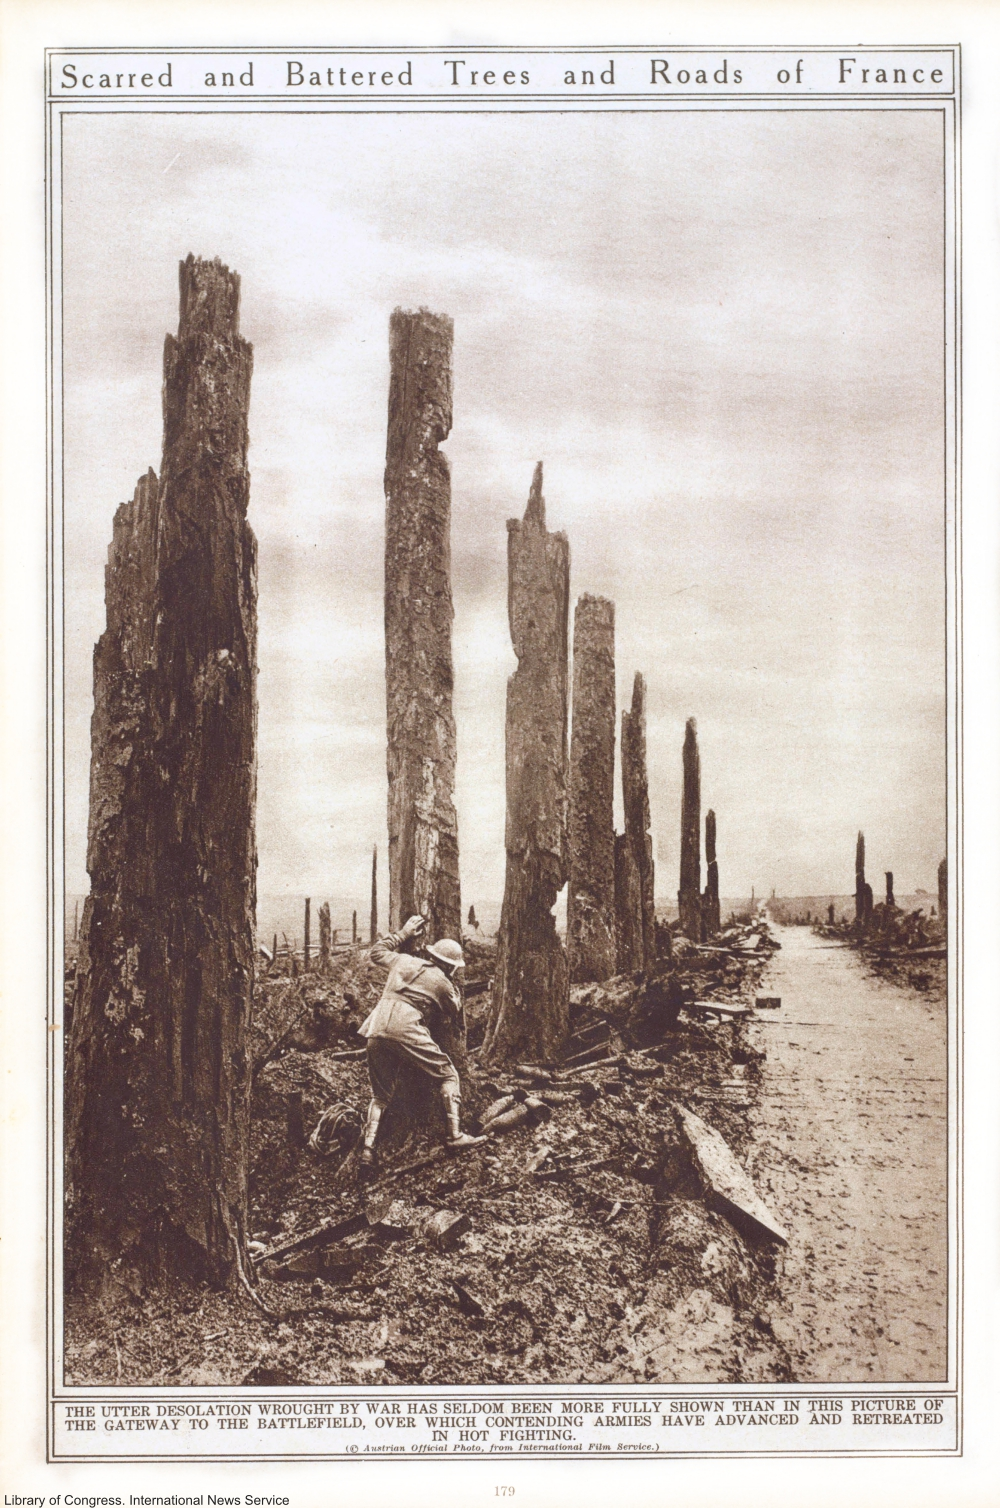 Damage to trees in France after WWI